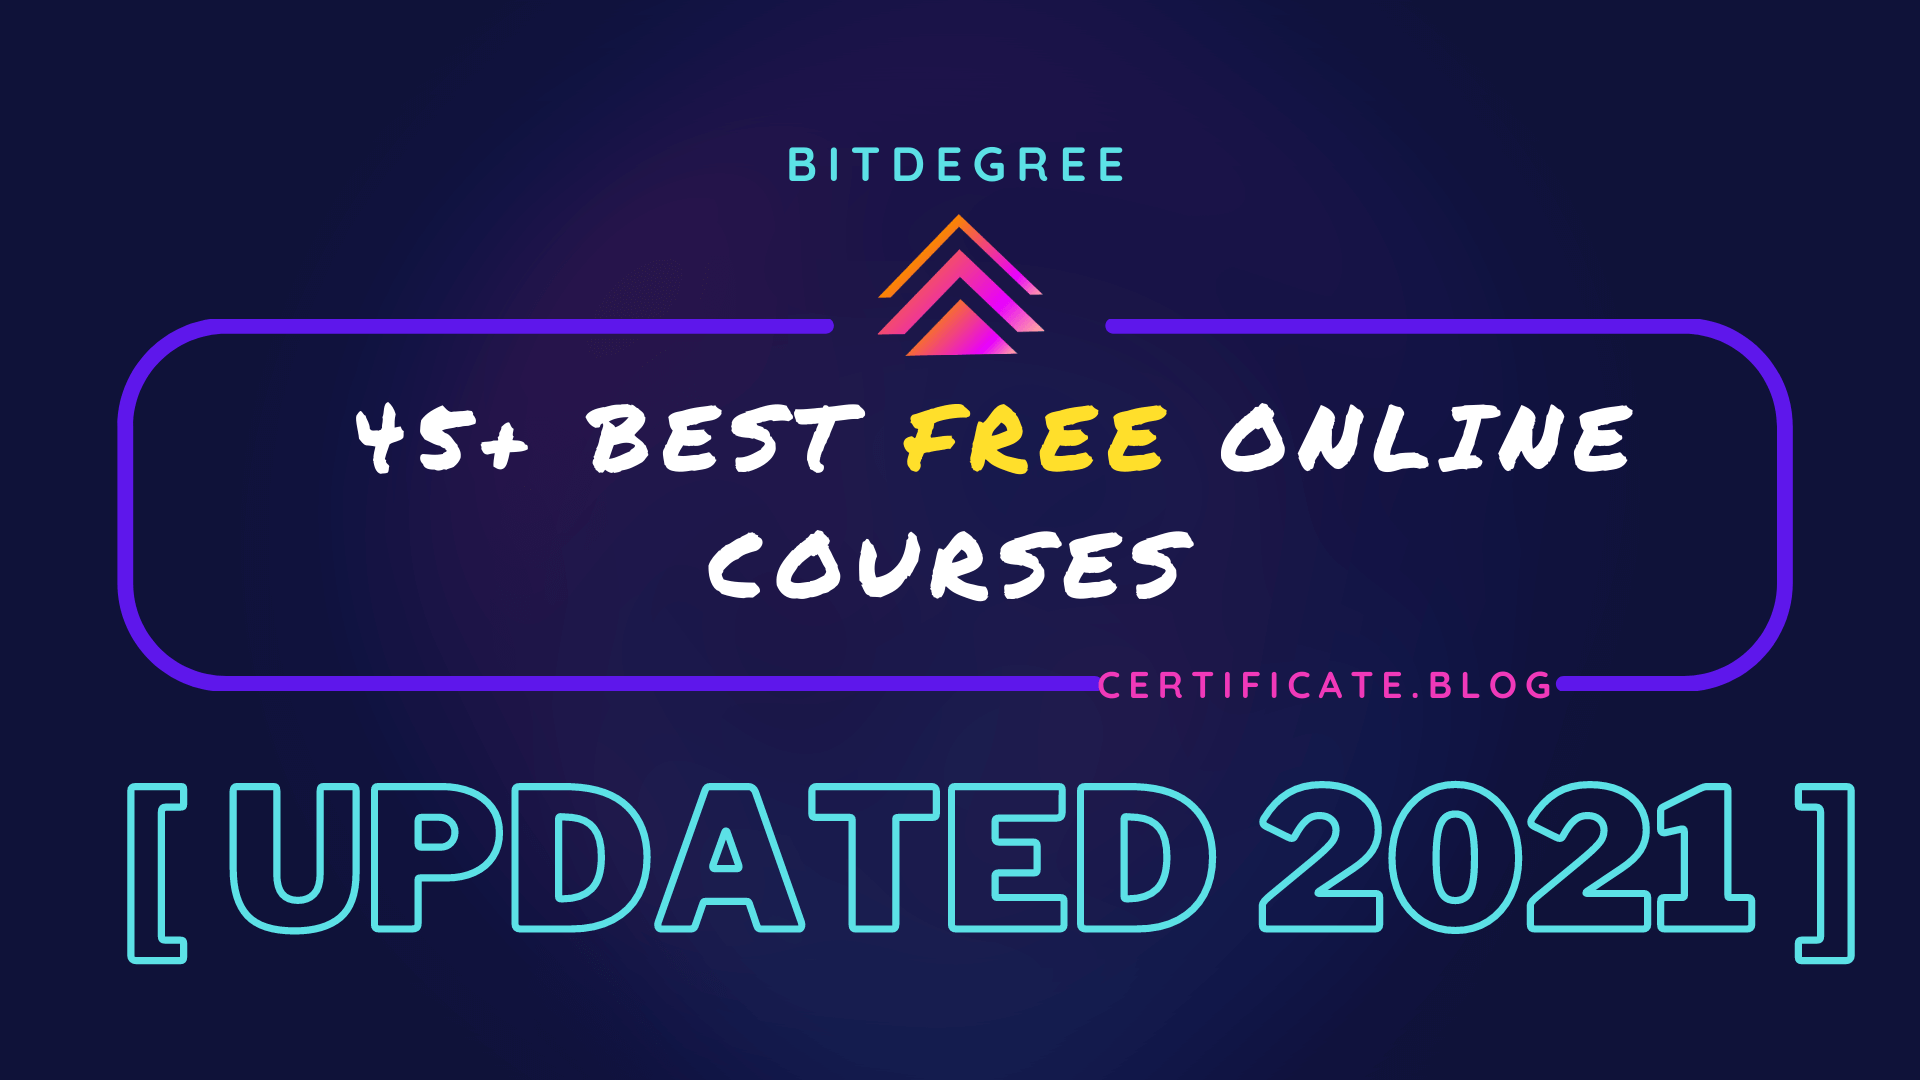 45+ Best Free Online Courses from Bitdegree [UPDATED January 2021]